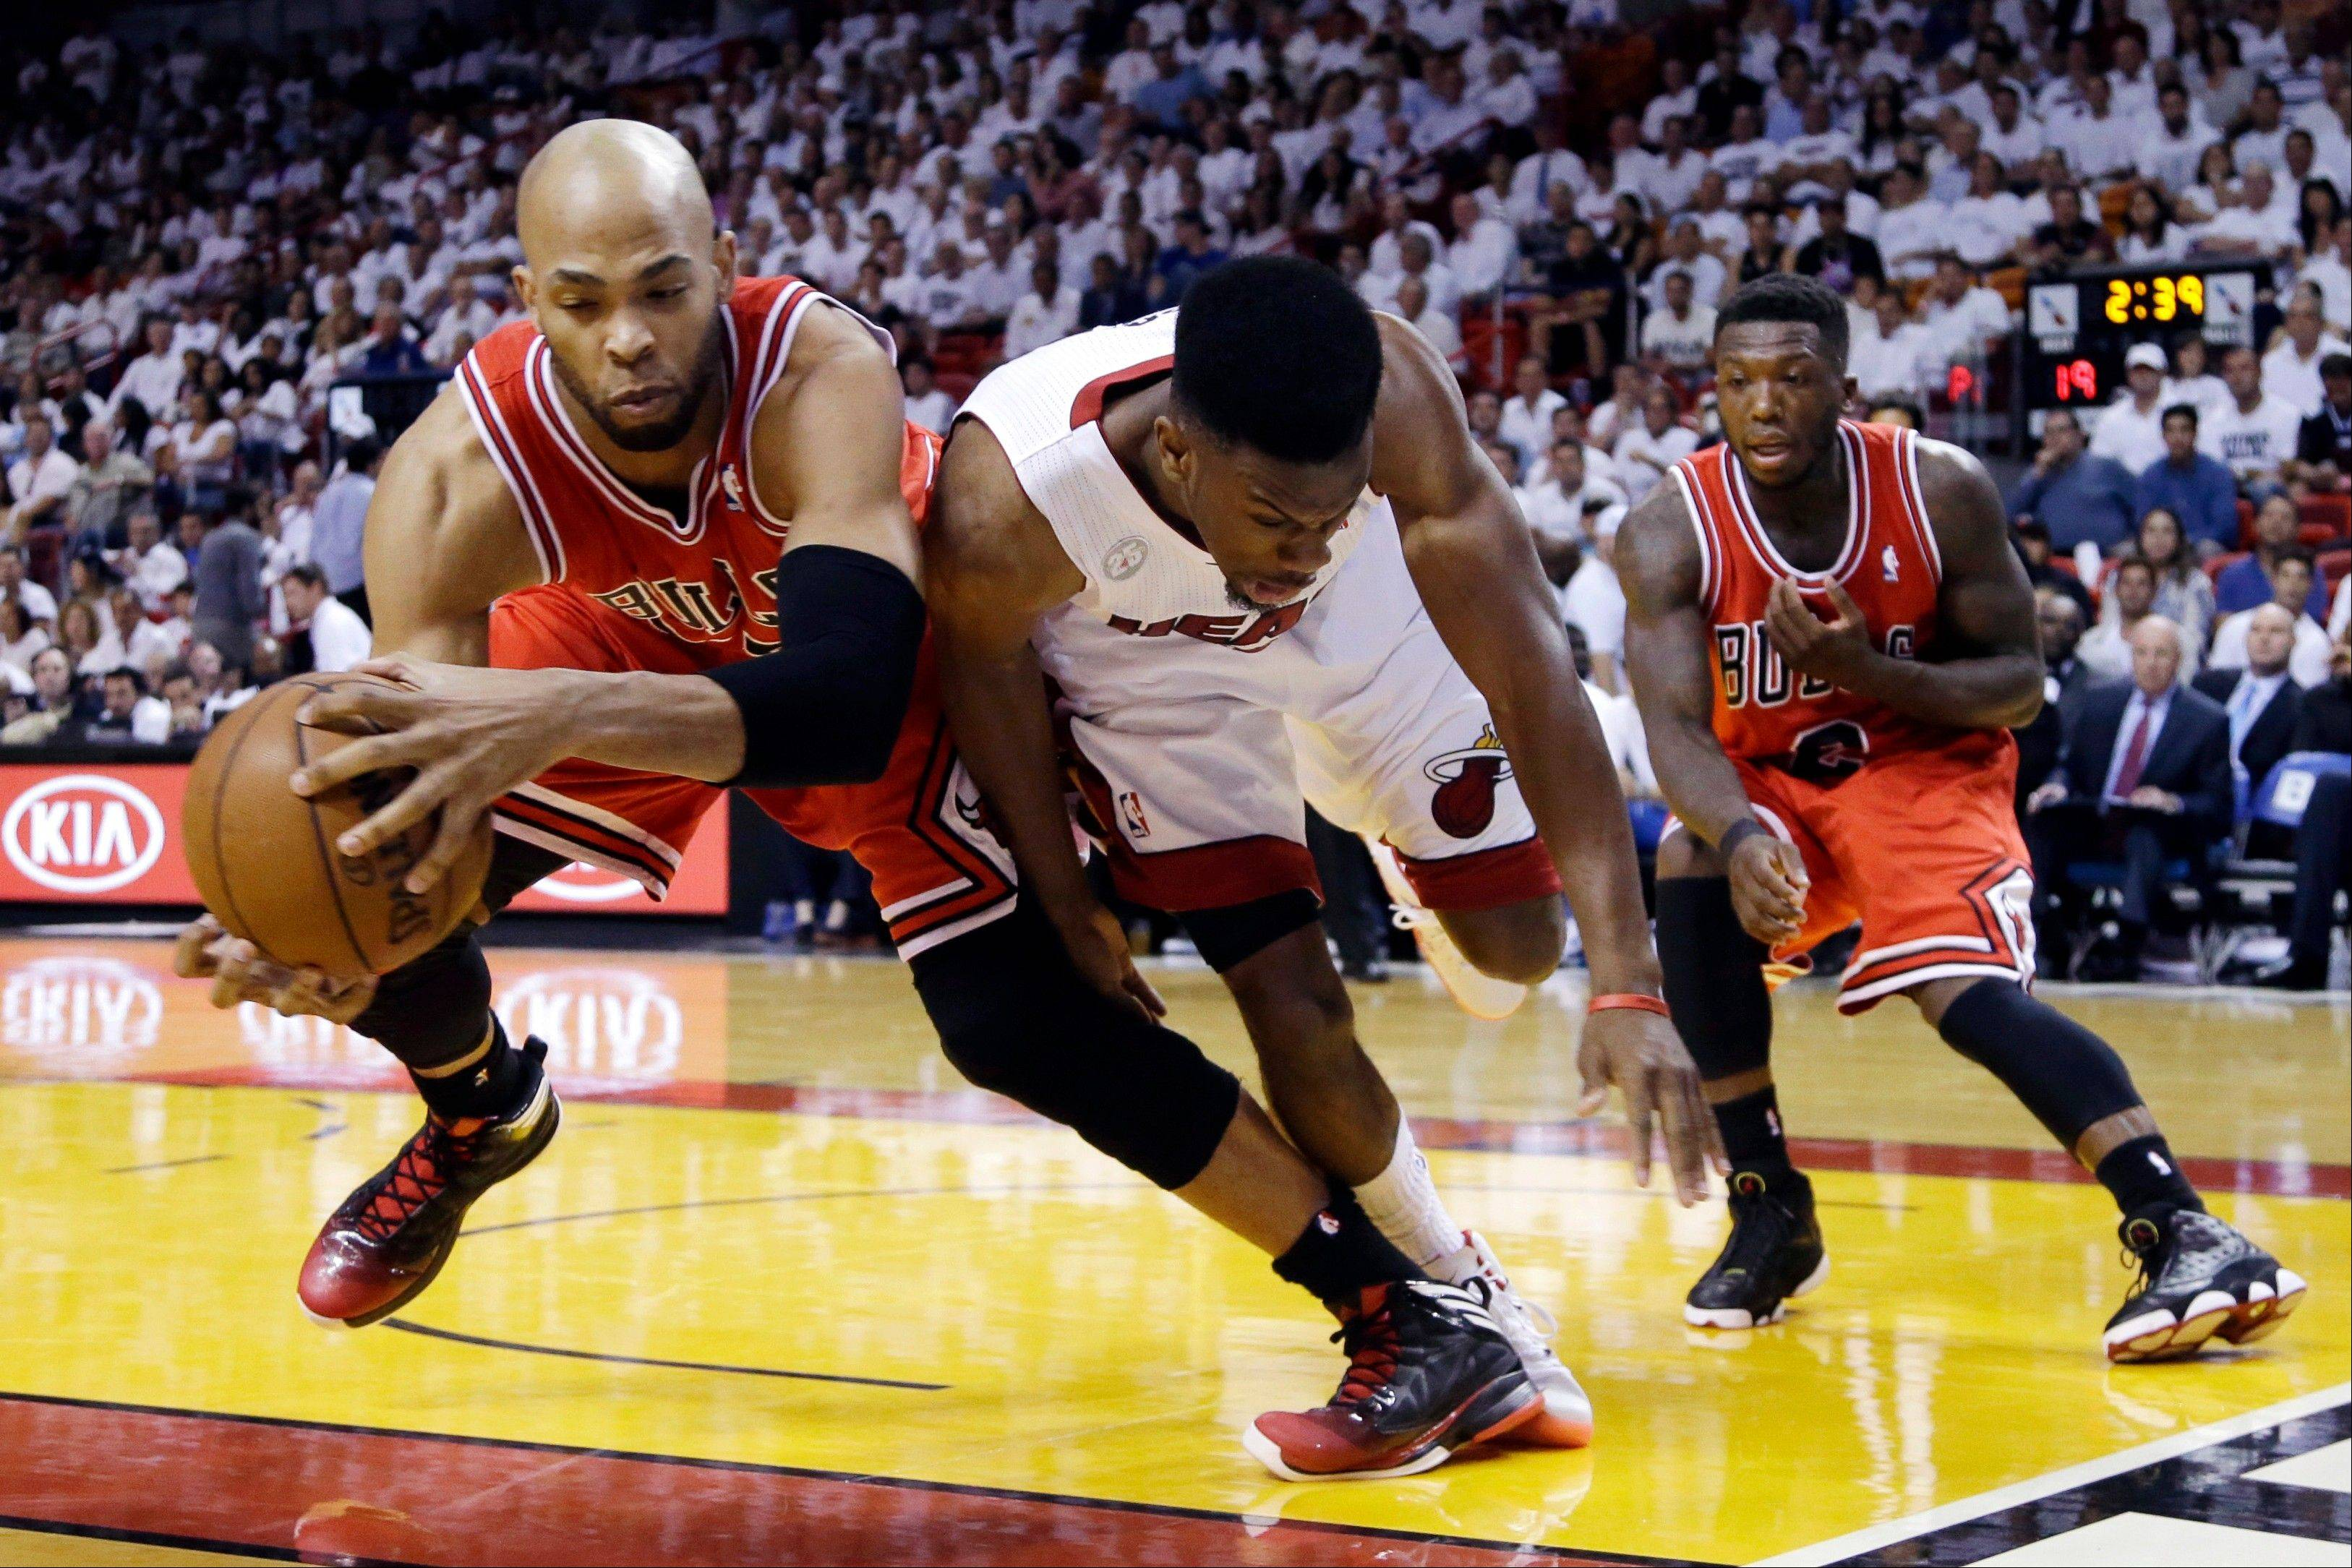 Chicago Bulls forward Taj Gibson, left, and Miami Heat guard Norris Cole battle for a loose ball as guard Nate Robinson, far right, watches during the first half of Game 2 of their NBA basketball playoff series in the Eastern Conference semifinals, Wednesday, May 8, 2013, in Miami.